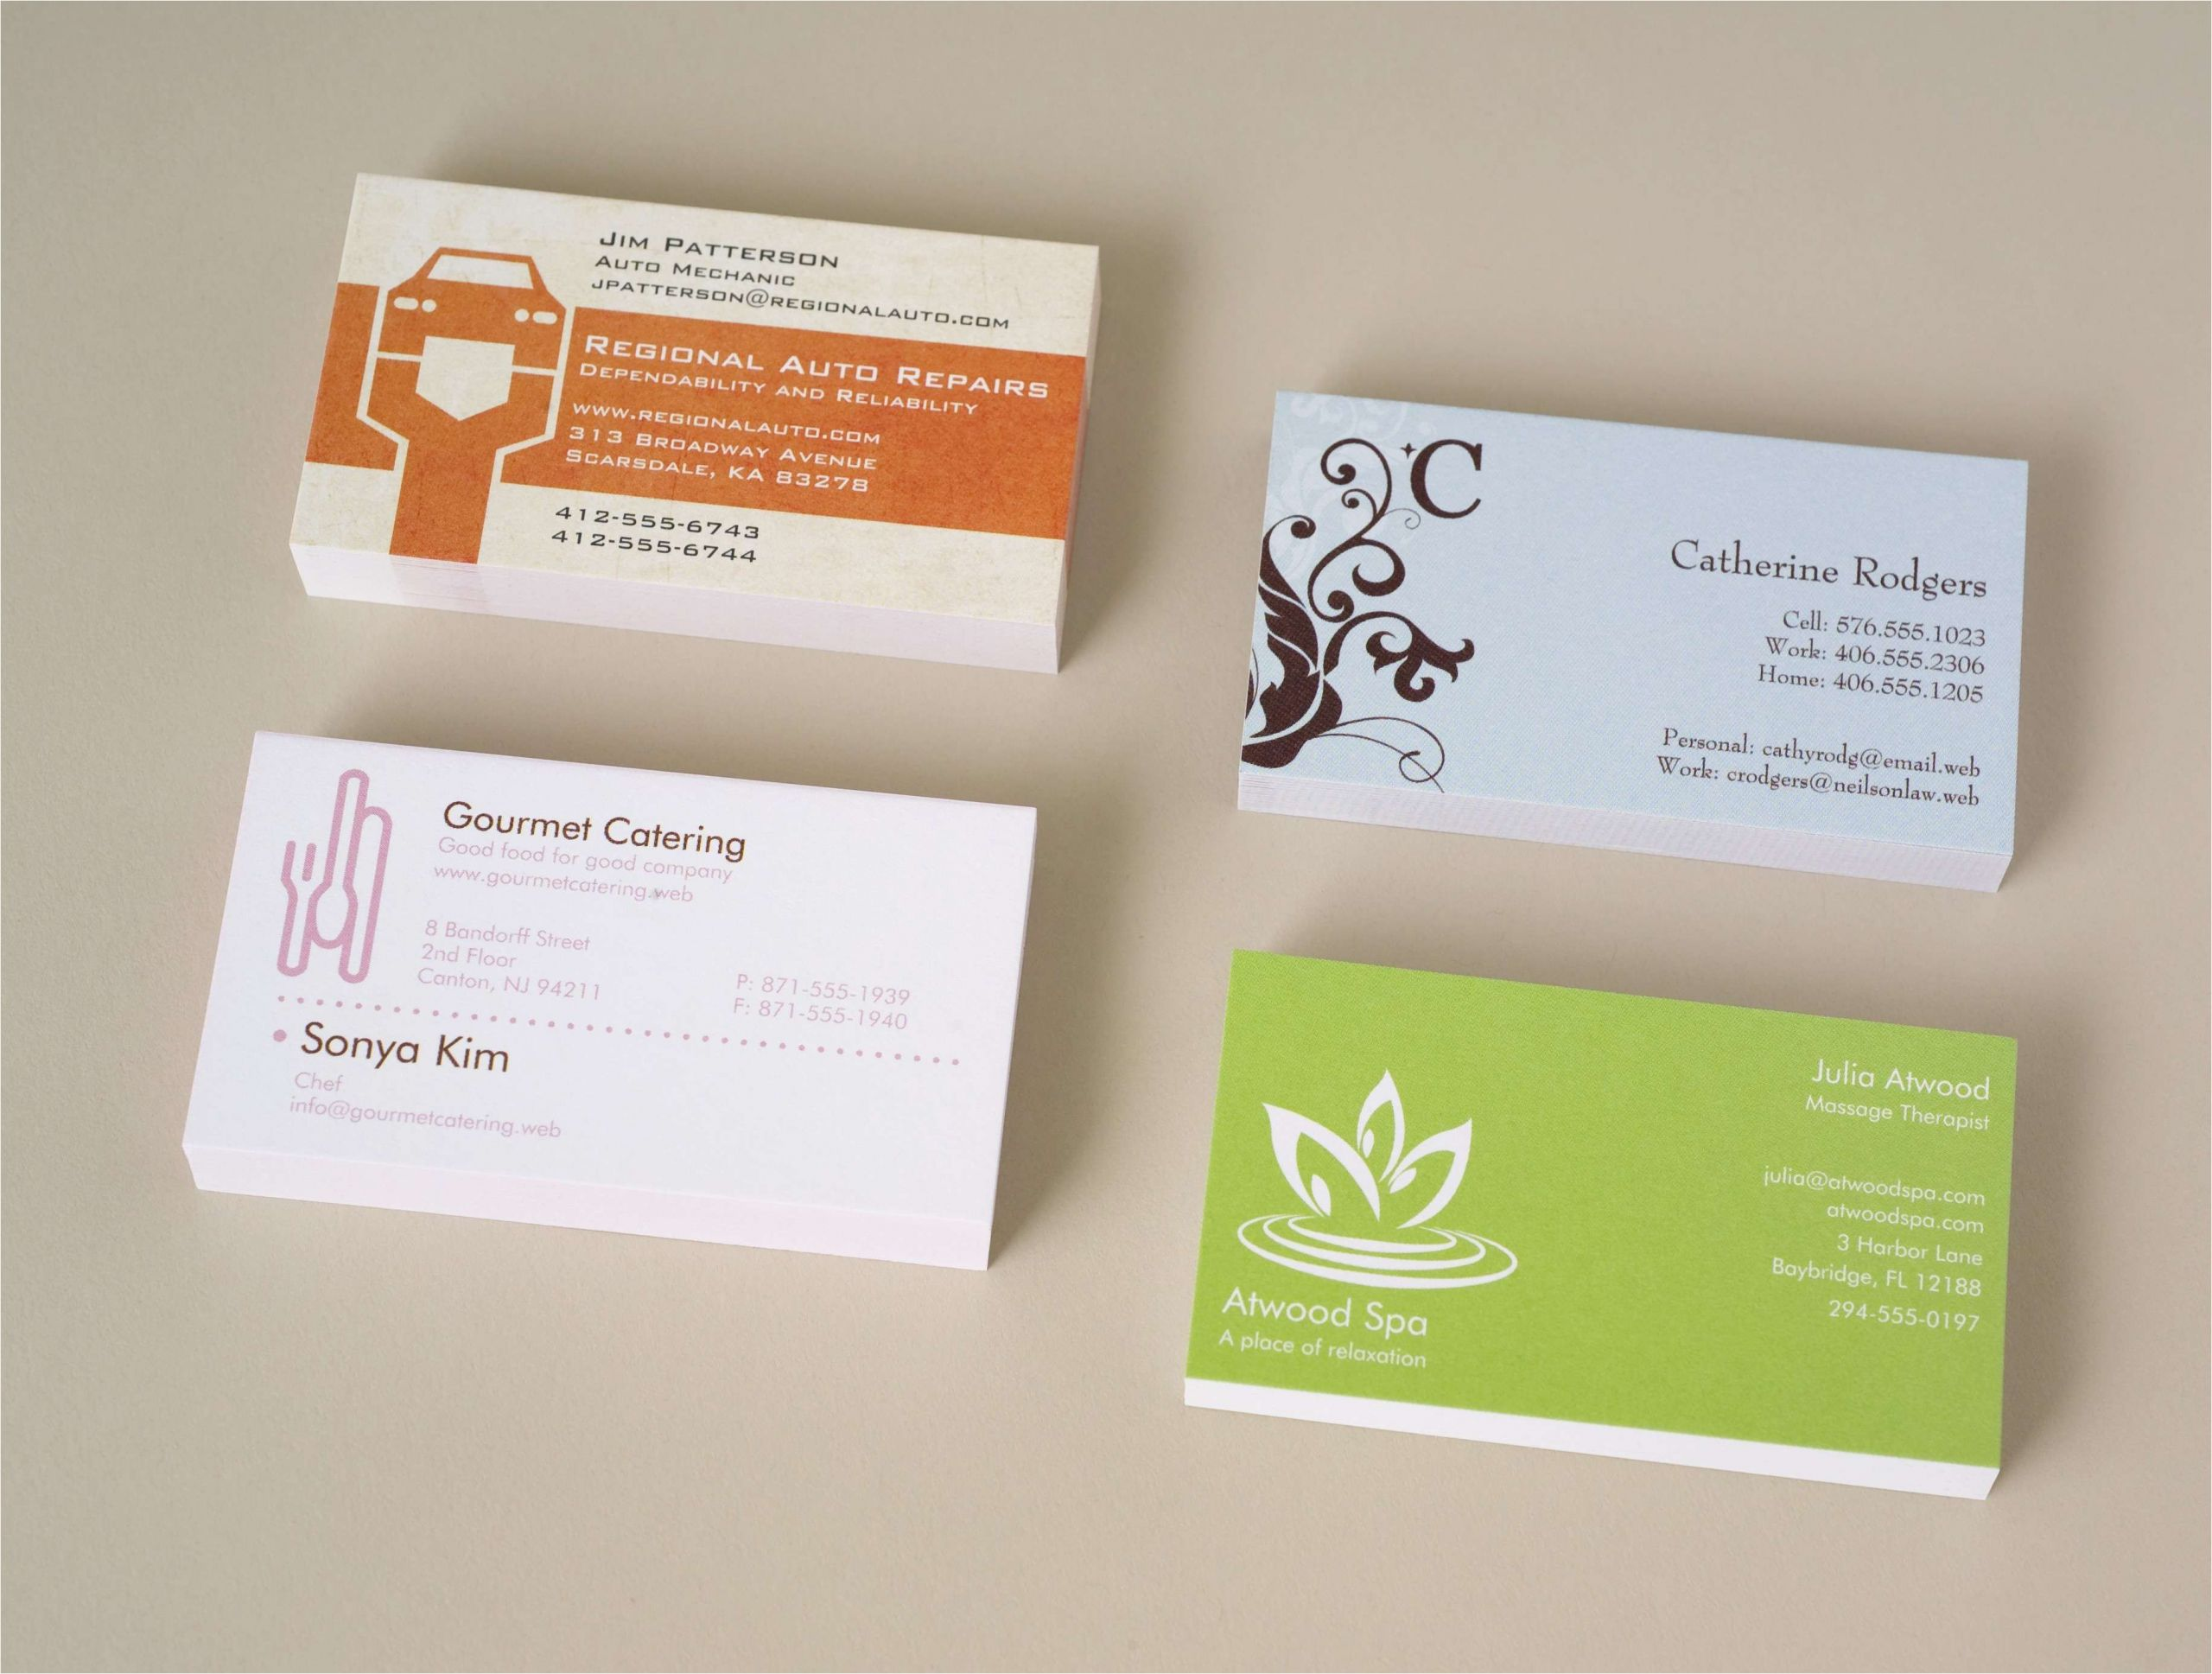 Vistaprint Christmas Card Promo Code Free Blank Business Card Templates for Word Business Card